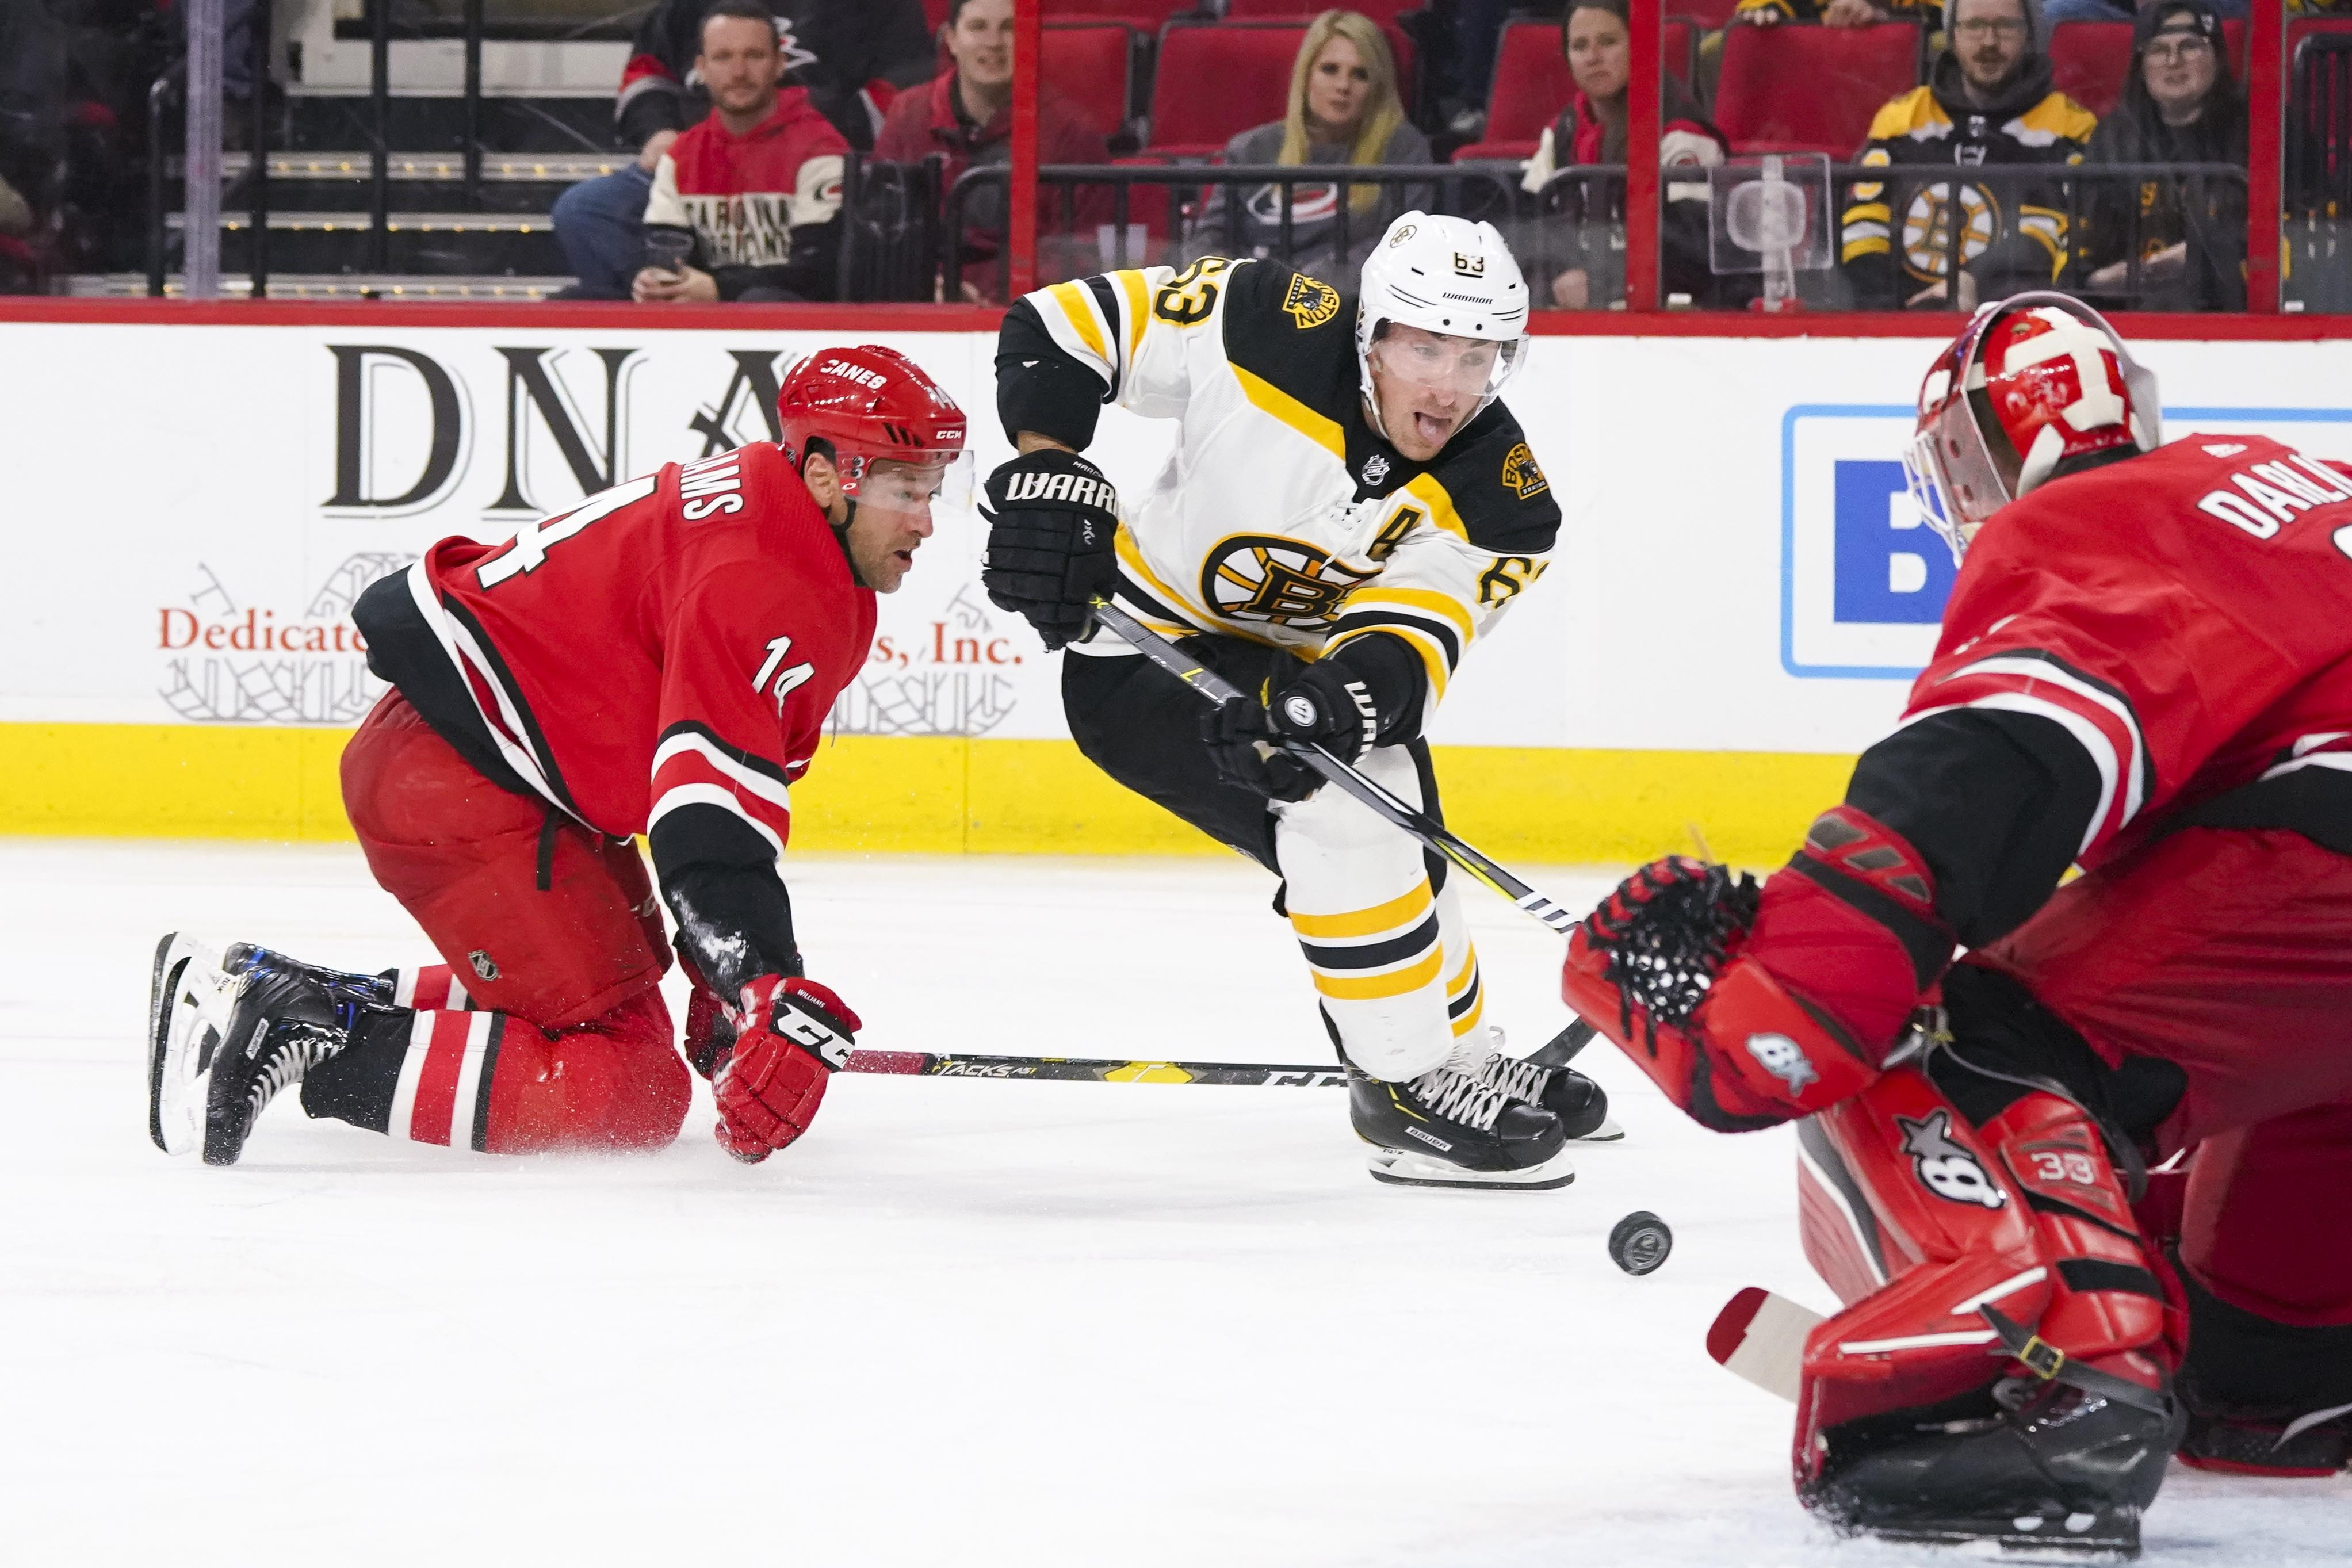 Oct 30, 2018; Raleigh, NC, USA; Boston Bruins left wing Brad Marchand (63) skates with the puck past Carolina Hurricanes right wing Justin Williams (14) during the third period at PNC Arena. The Boston Bruins defeated the Carolina Hurricanes 3-2. Mandator